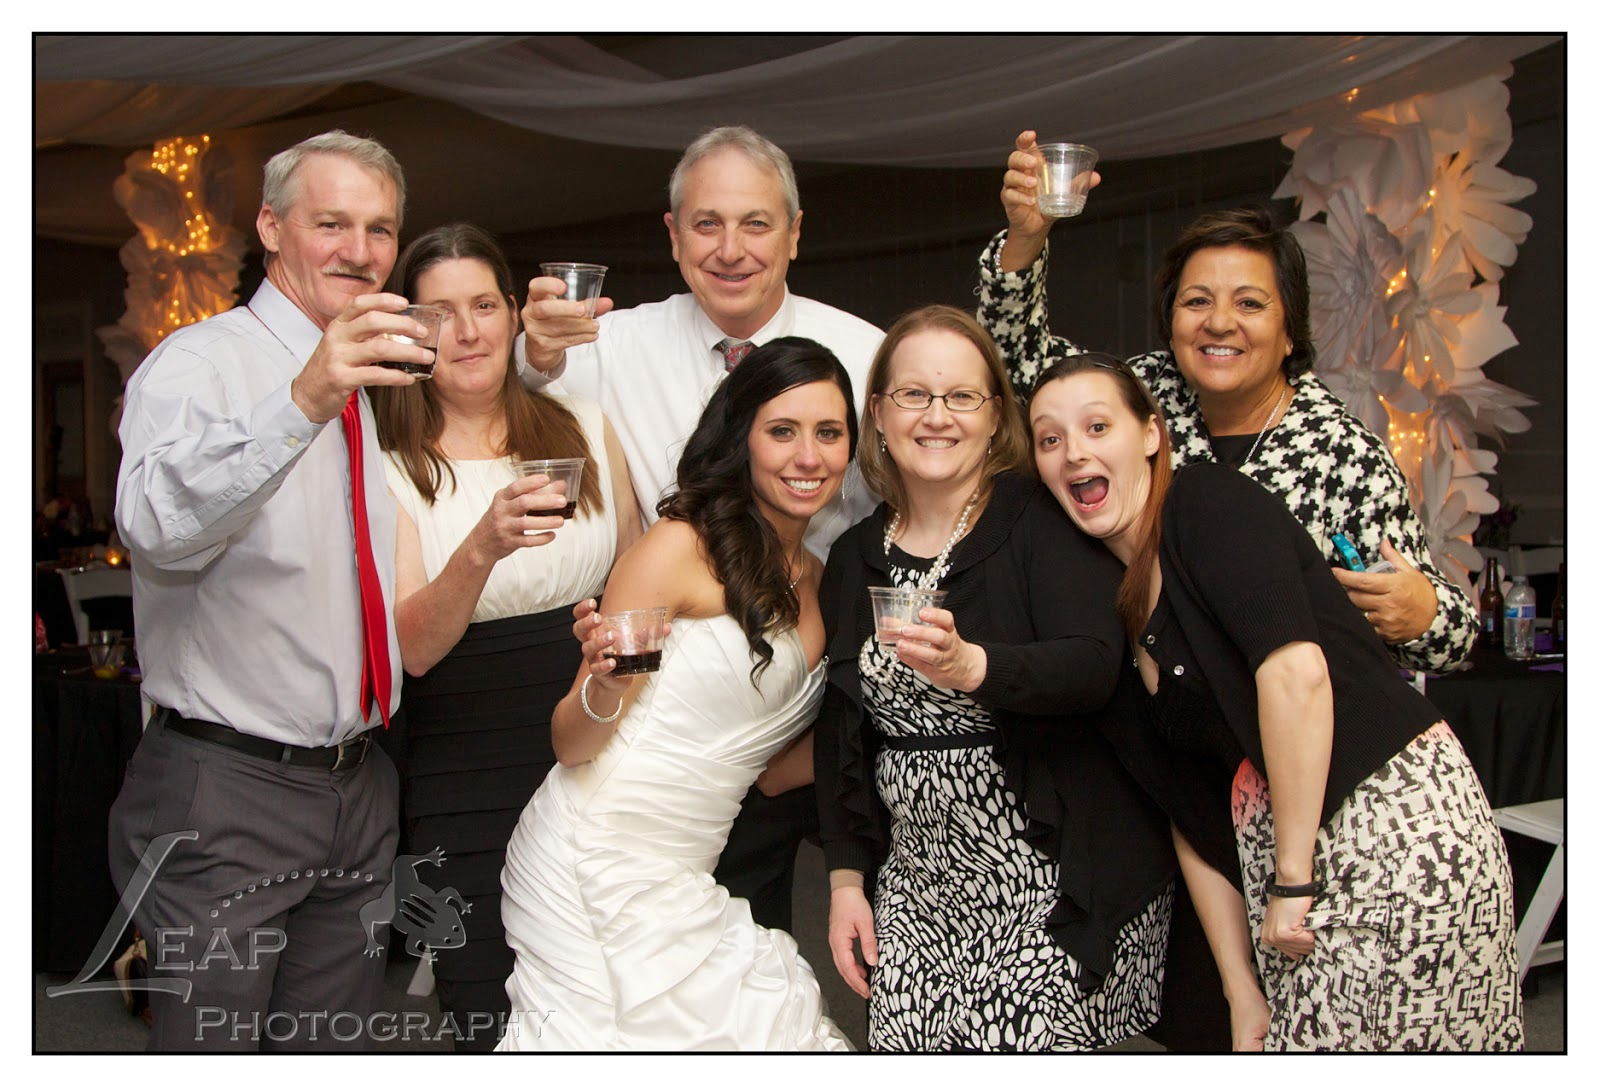 group of guests at wedding, having a good time